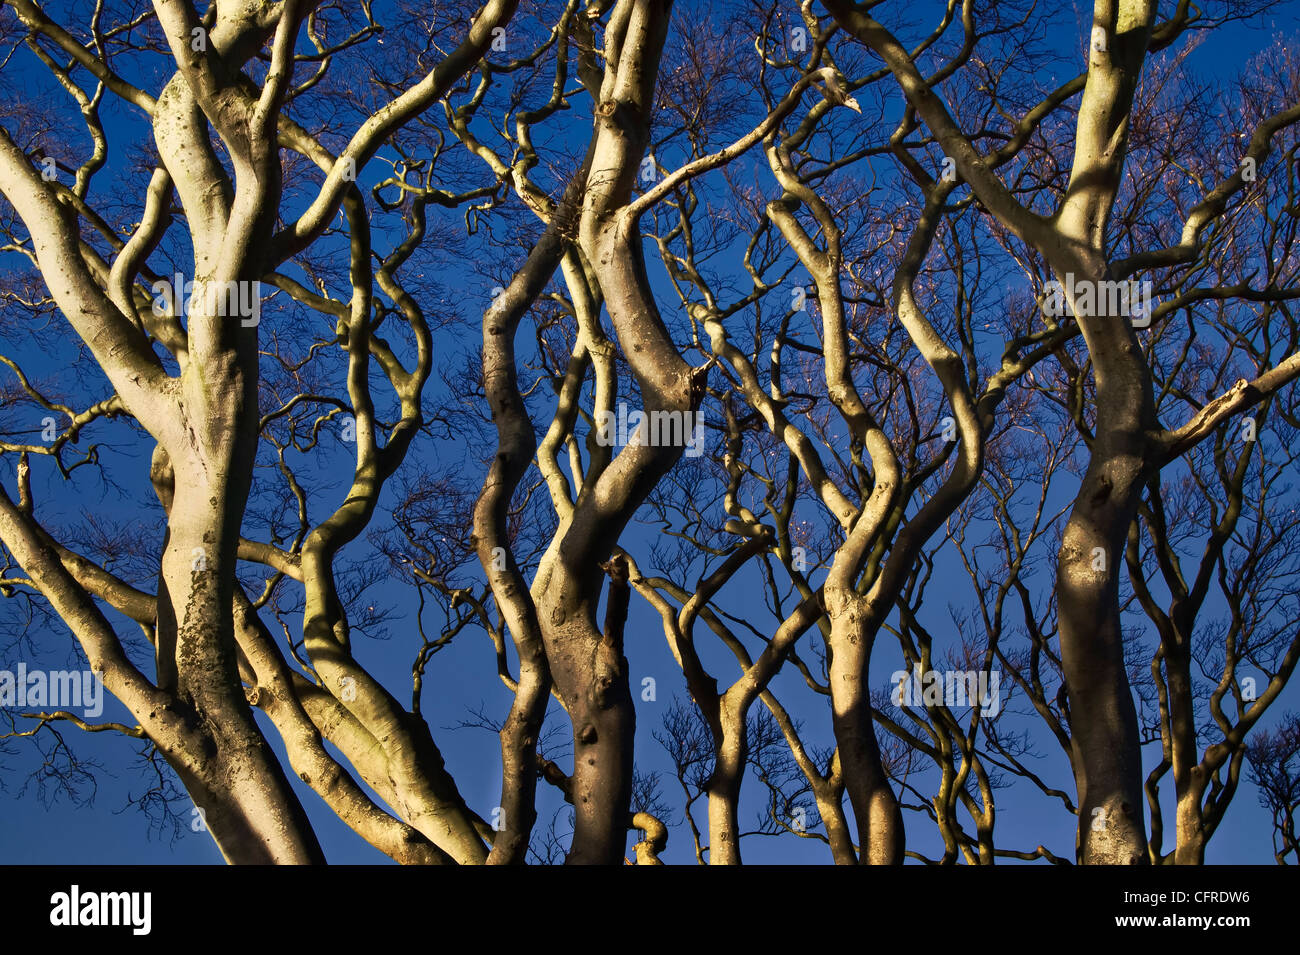 Bare tree branches in winter, with sunlight and shadow making patterns. - Stock Image